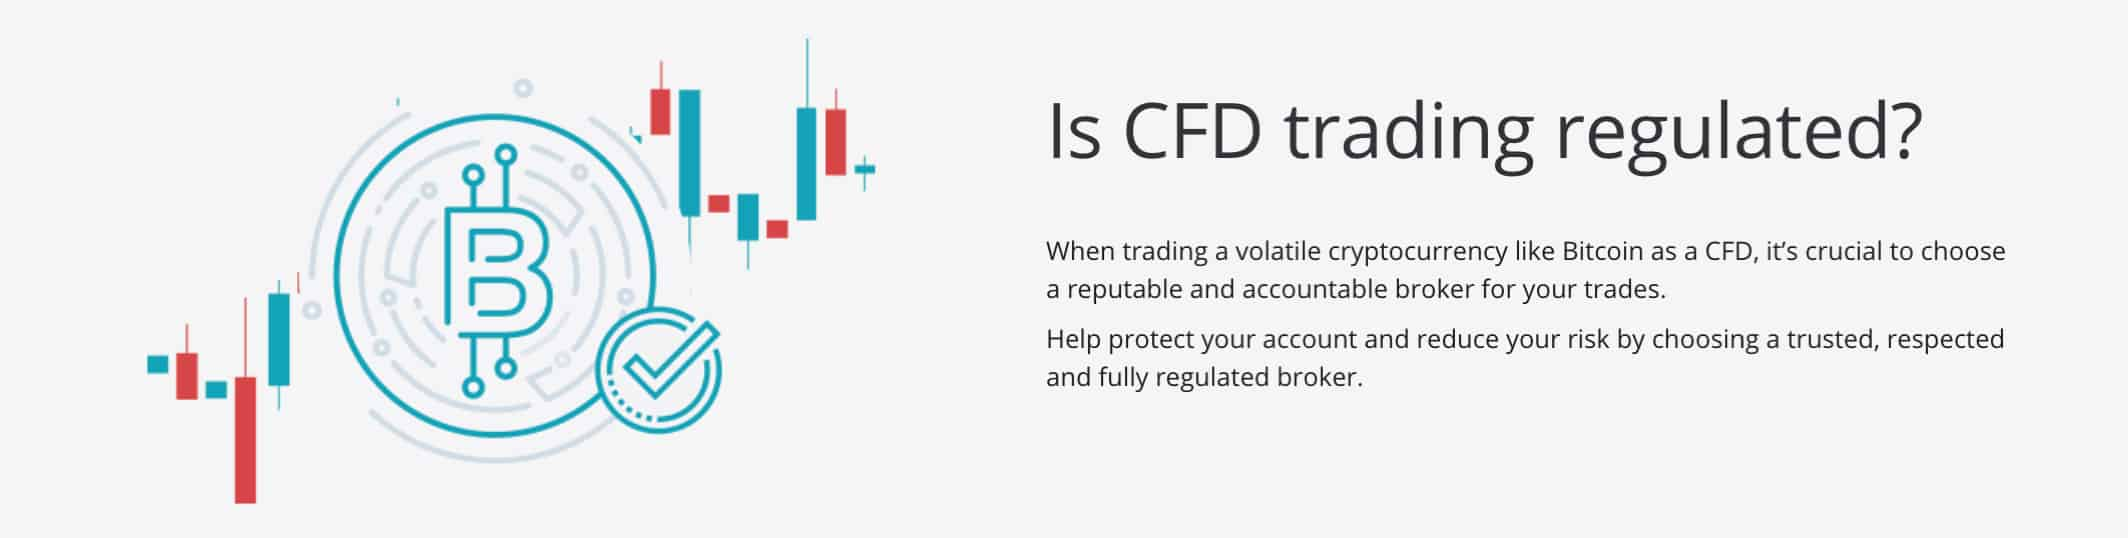 AxiTrader Regulation Trading CFDs